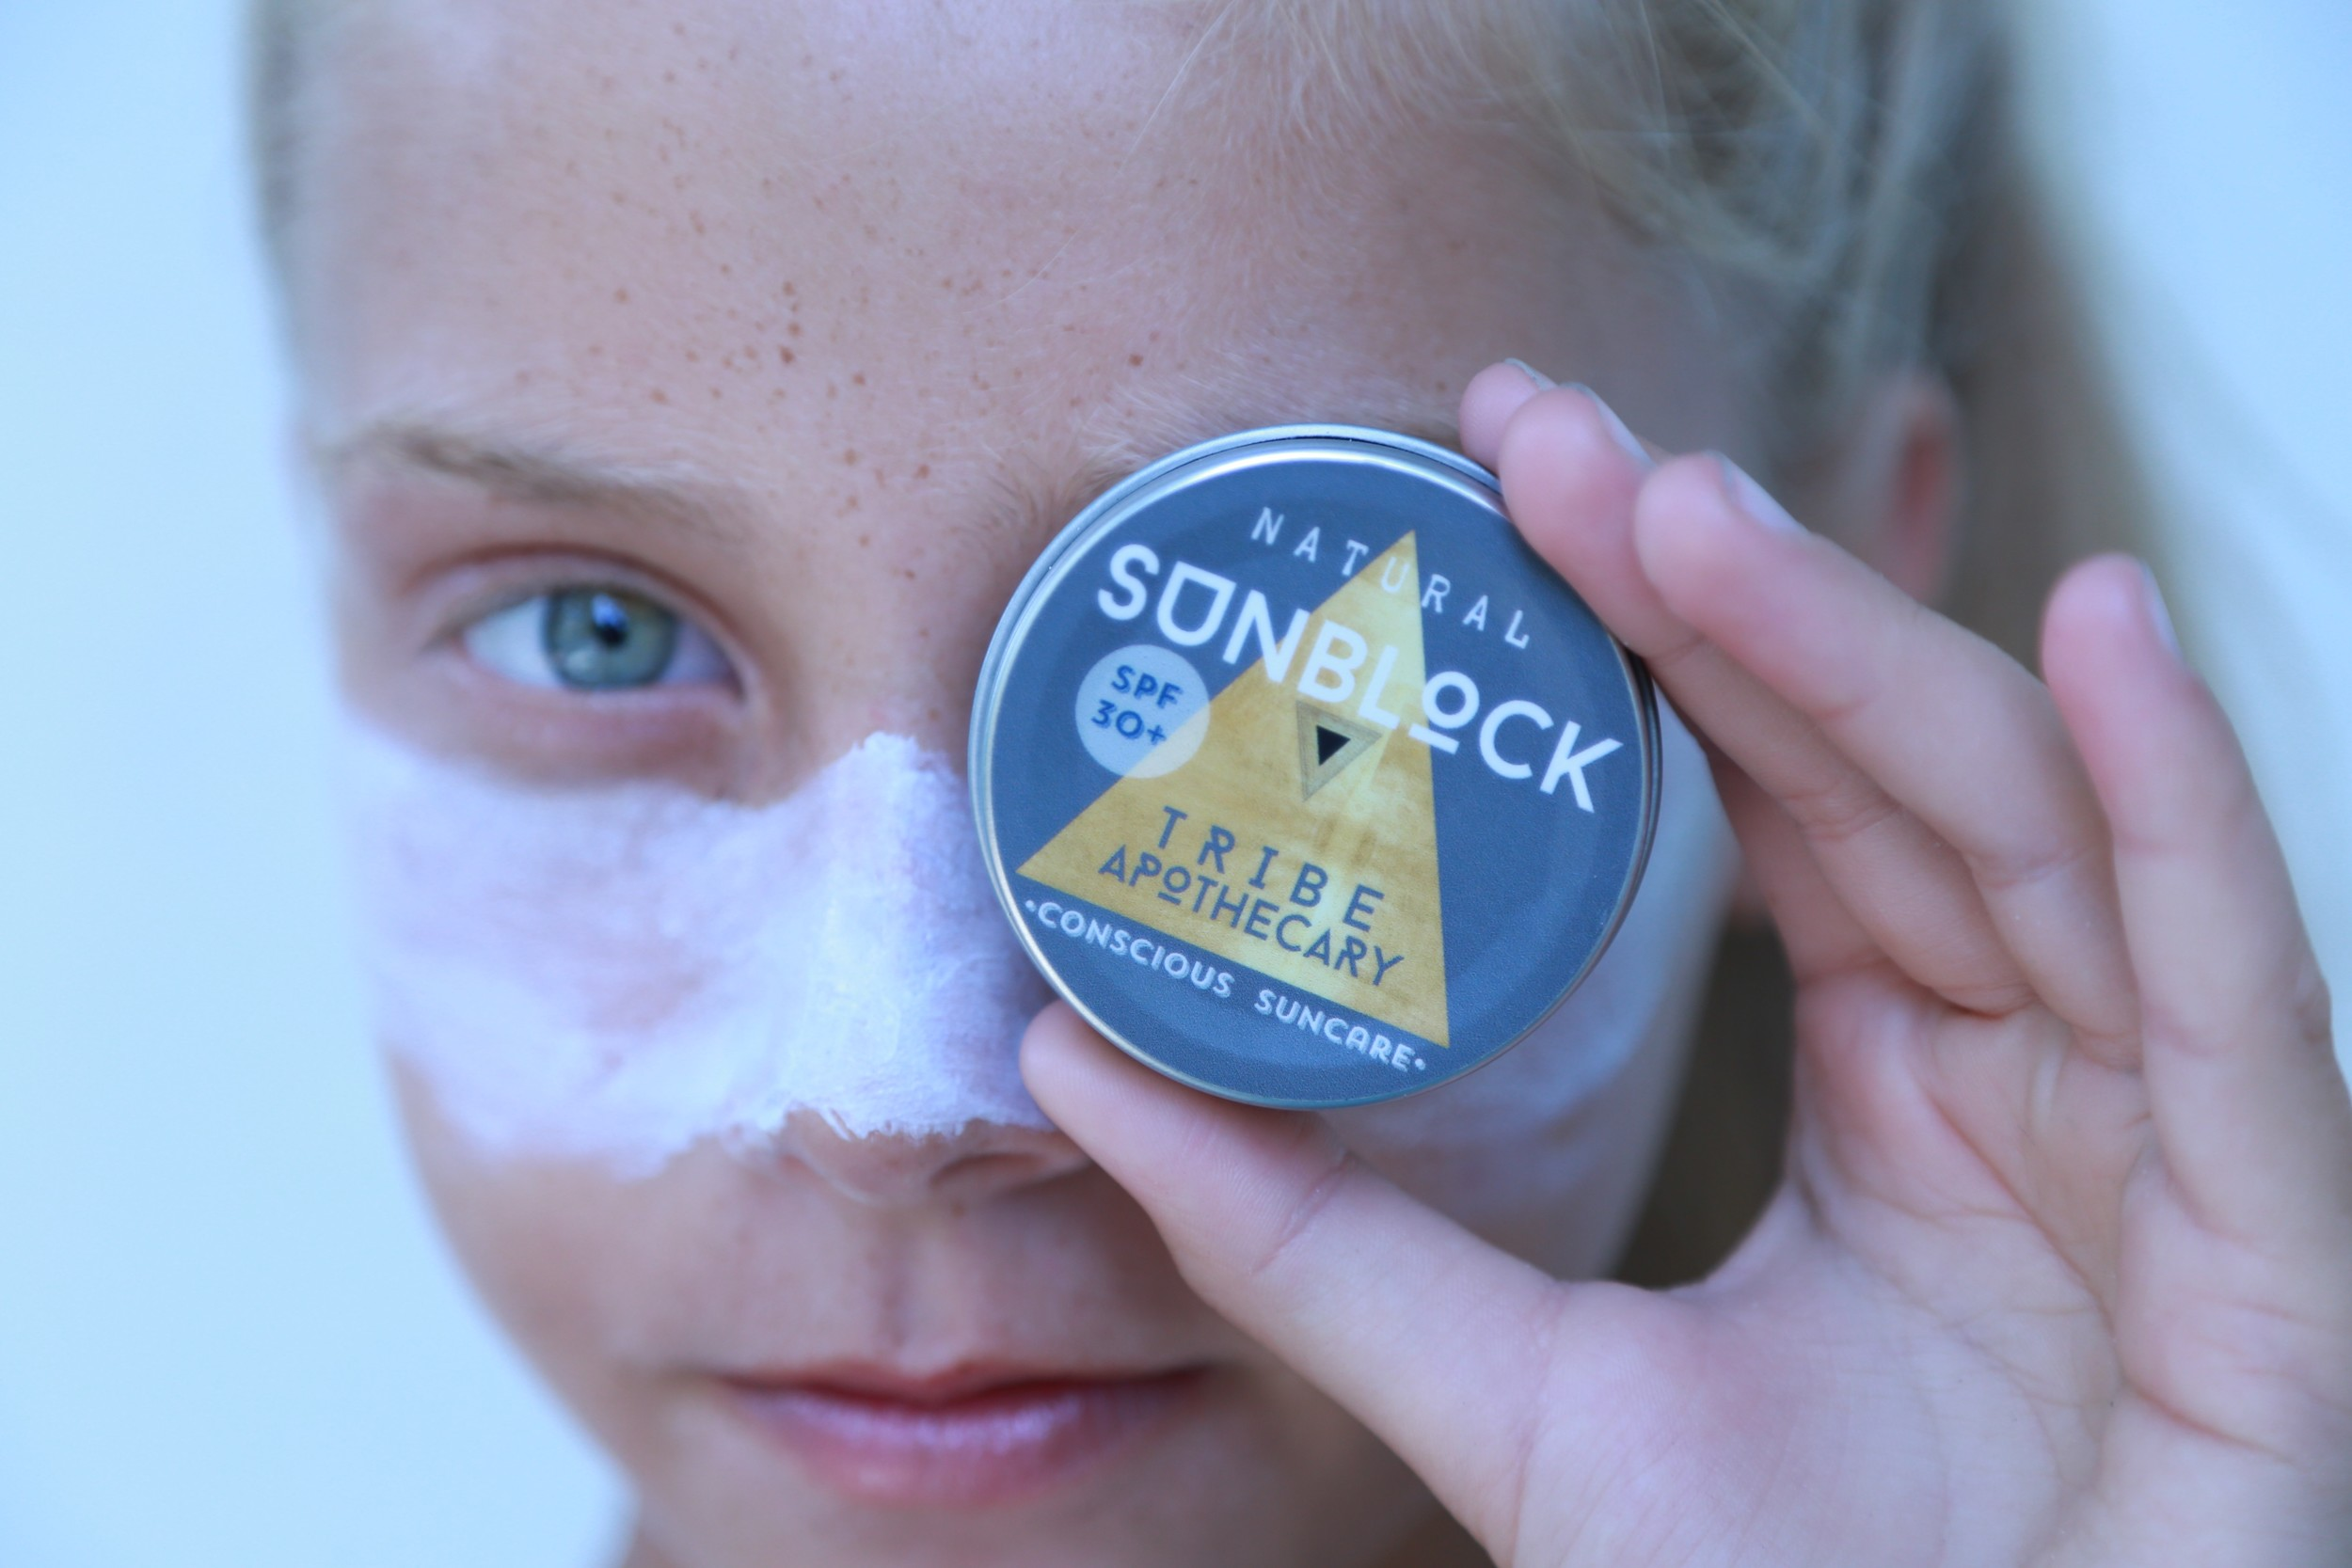 Shaylee Estes holds up a tin of the Tribe Apothecary sun block.